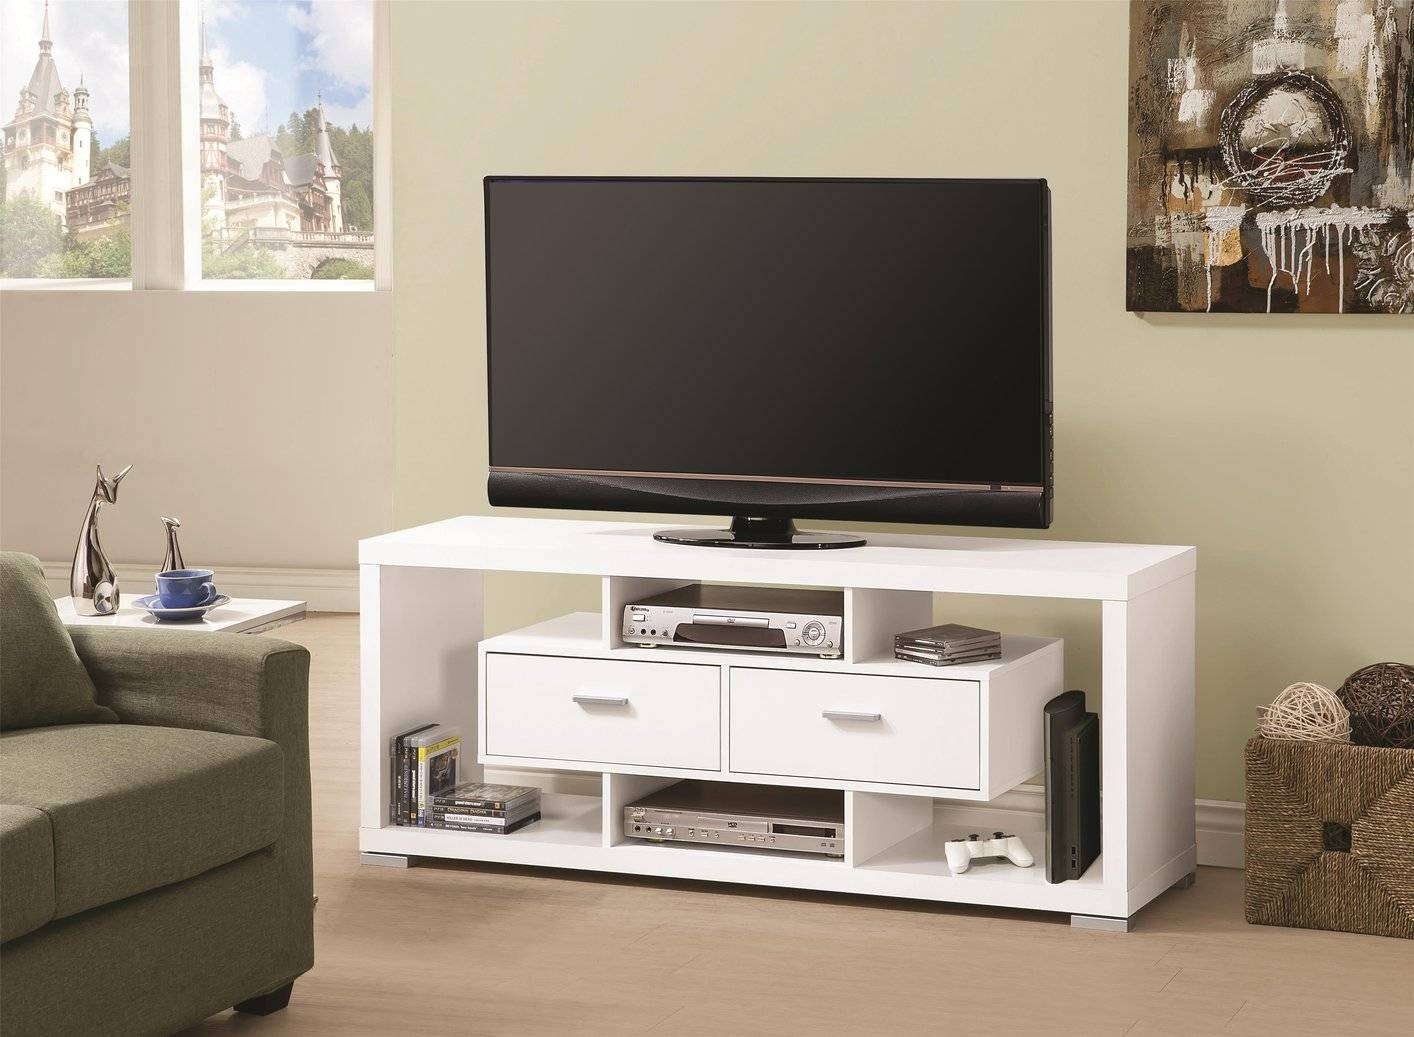 White Wood Tv Stand - Steal-A-Sofa Furniture Outlet Los Angeles Ca within White And Wood Tv Stands (Image 12 of 15)